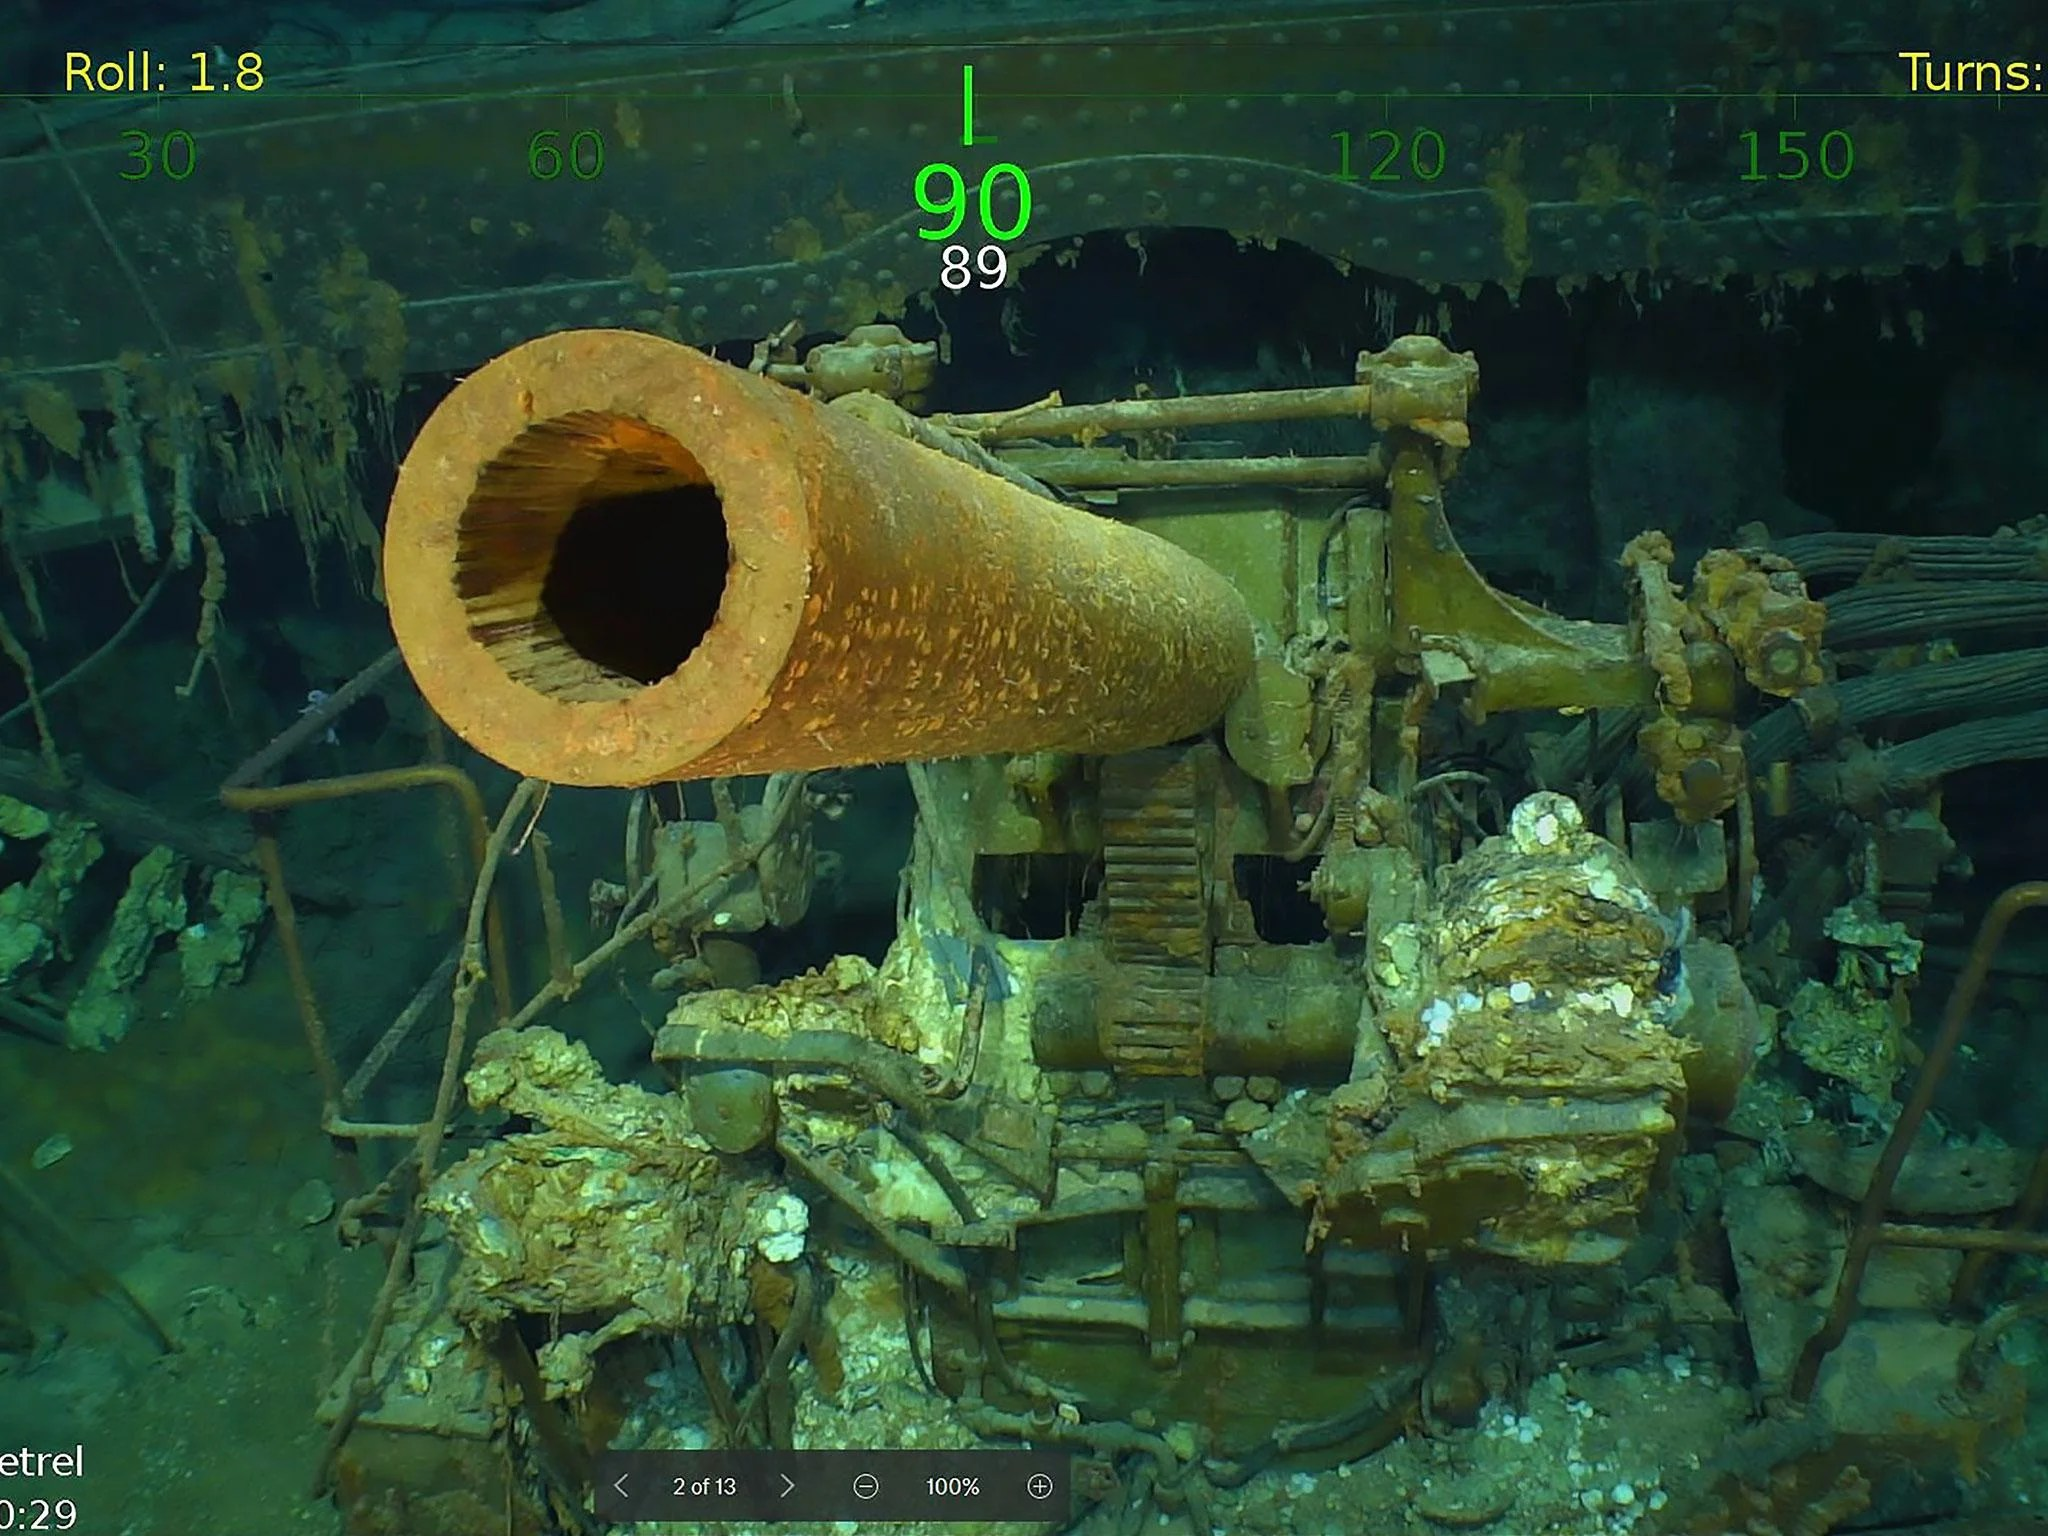 Uss Lexington Wreck Of Second World War Aircraft Carrier Found In Coral Sea After 76 Years